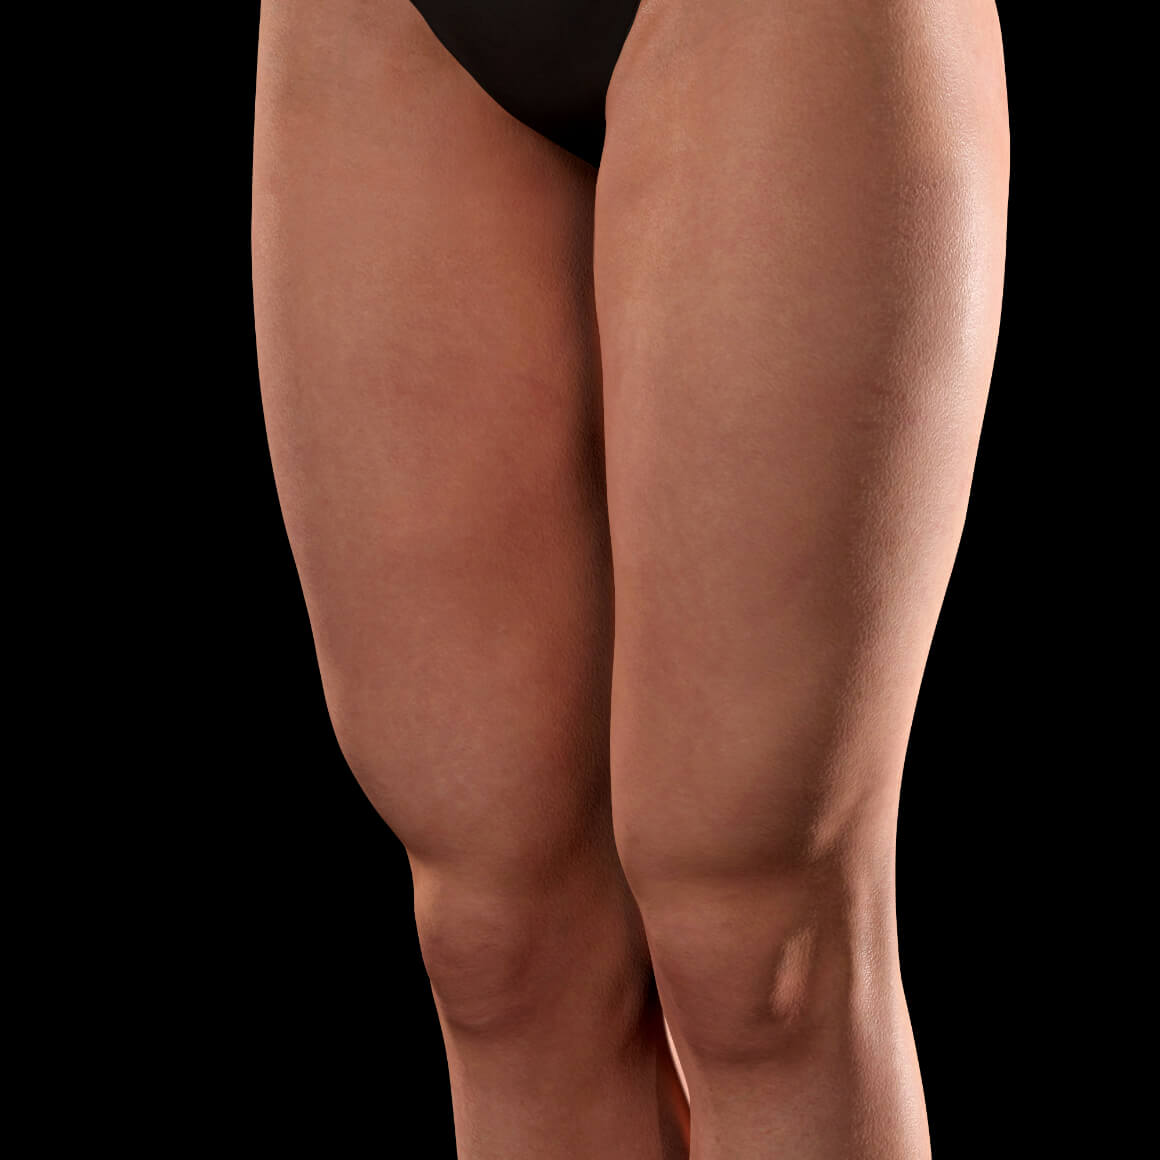 Angled thighs of a Clinique Chloé female patient after Venus Viva fractional radiofrequency treatments for stretch marks